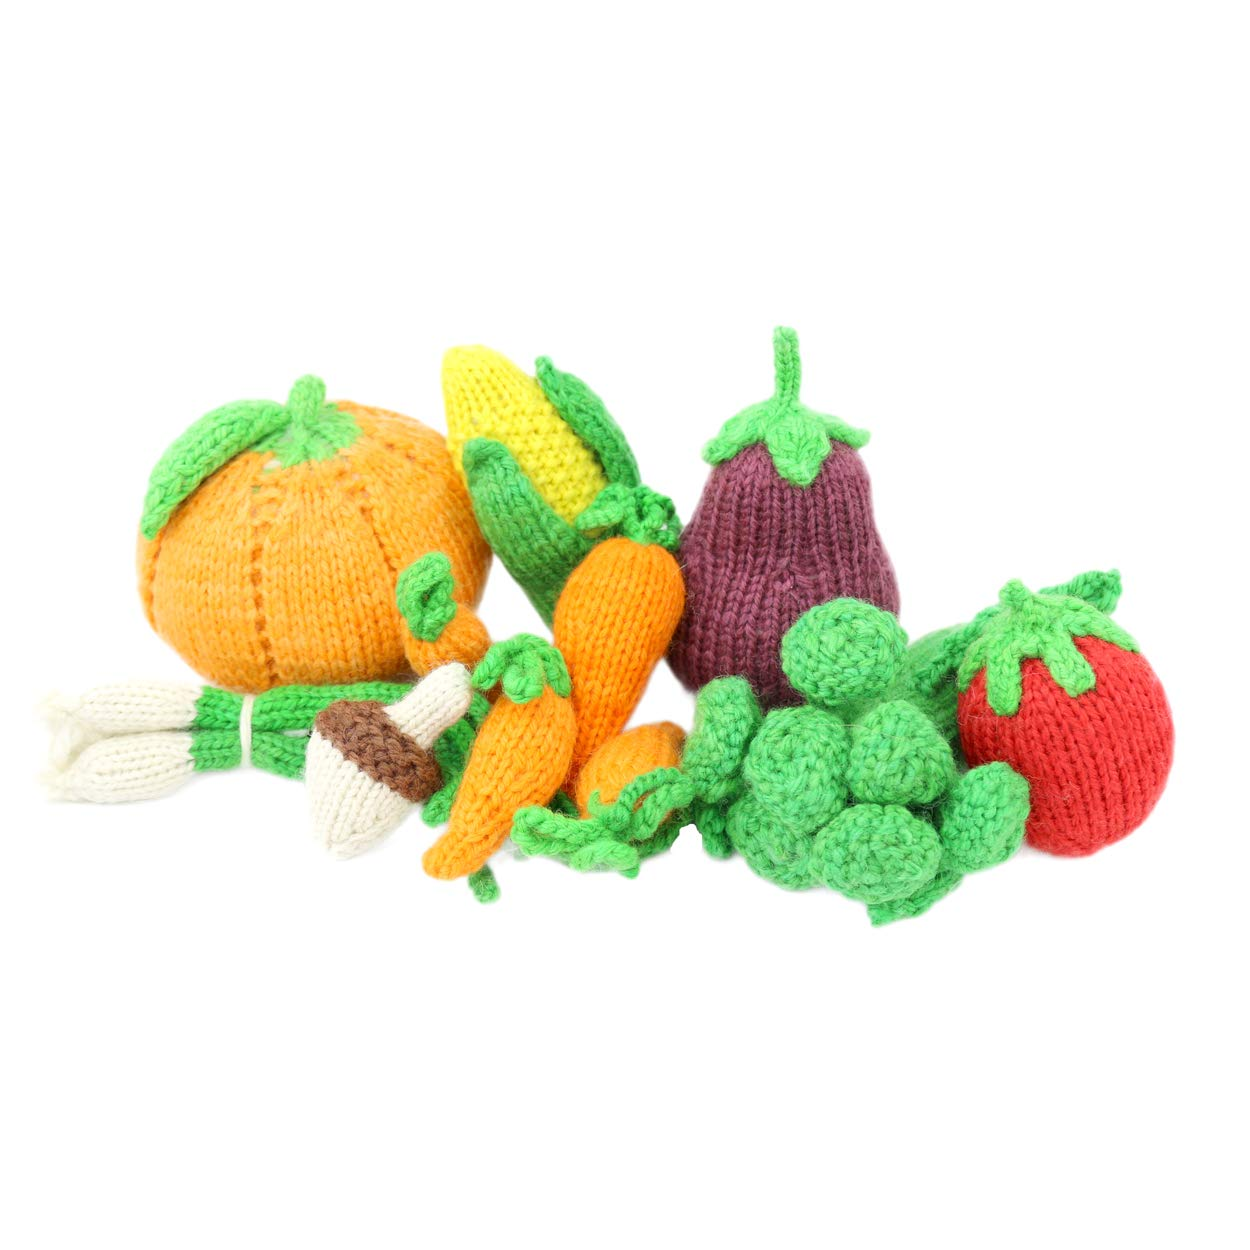 Camden Rose Knitted Play Food Set - Vegetable Variety, 11 Pieces